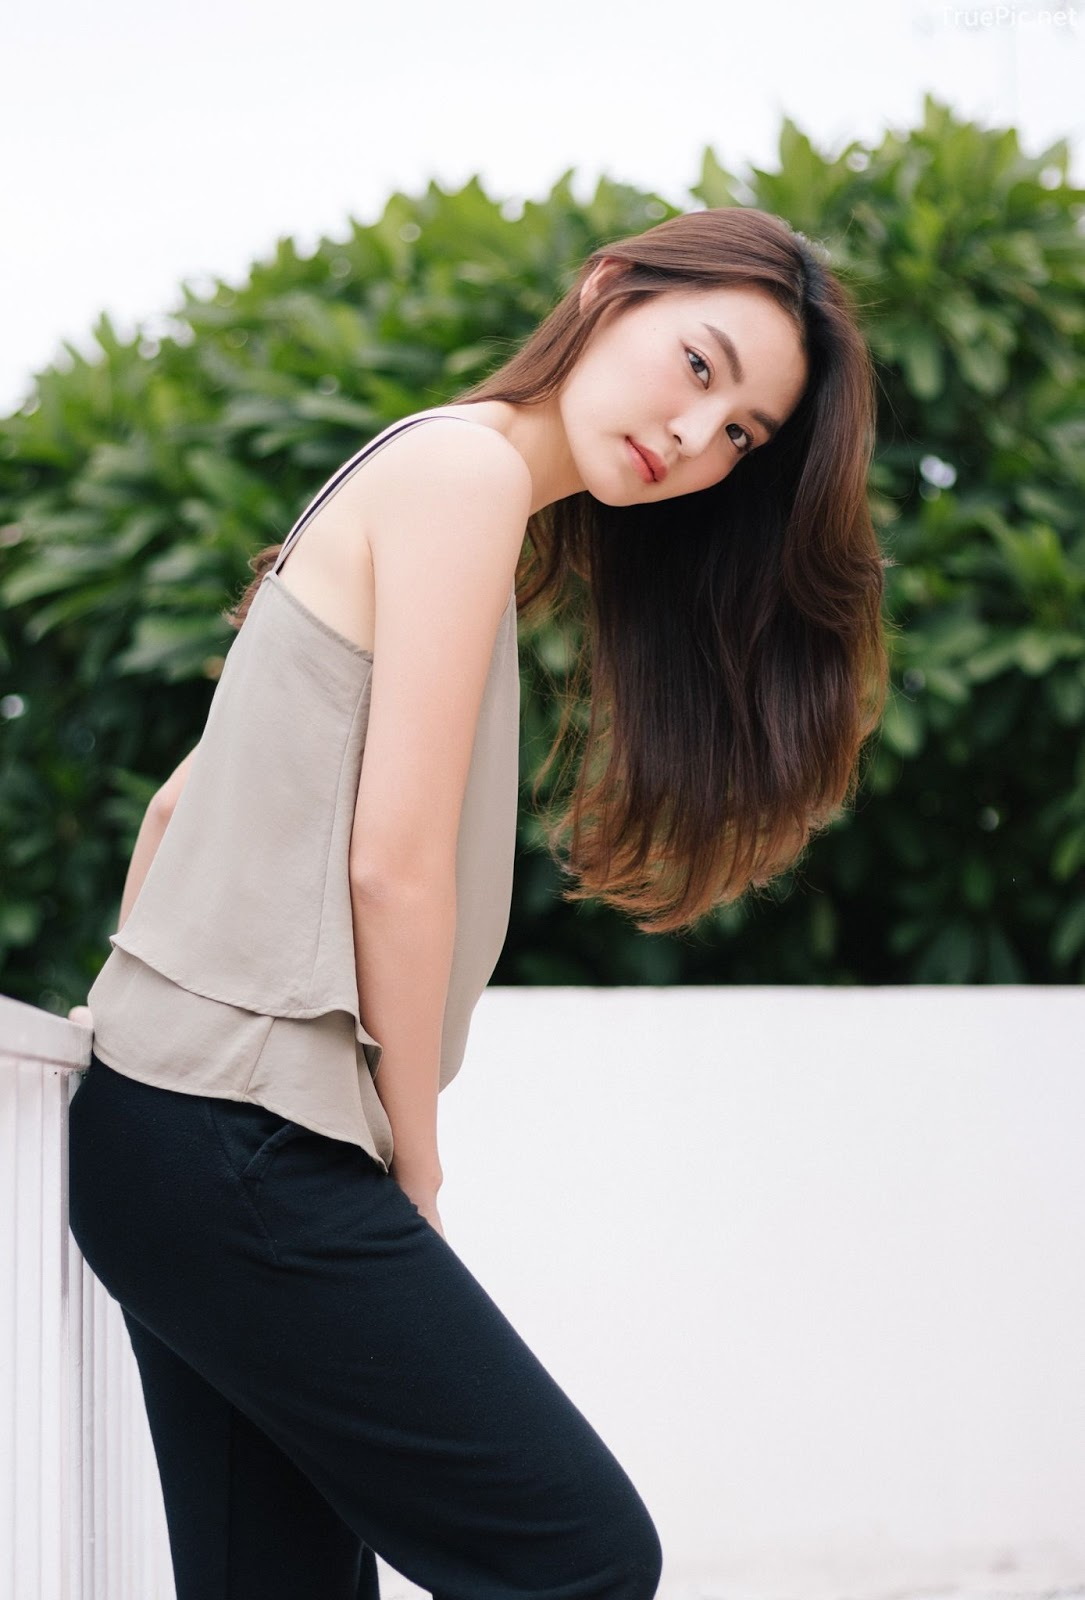 Beauty Thailand Kapook Phatchara so attractive with photo album Bloom with grace - Picture 10